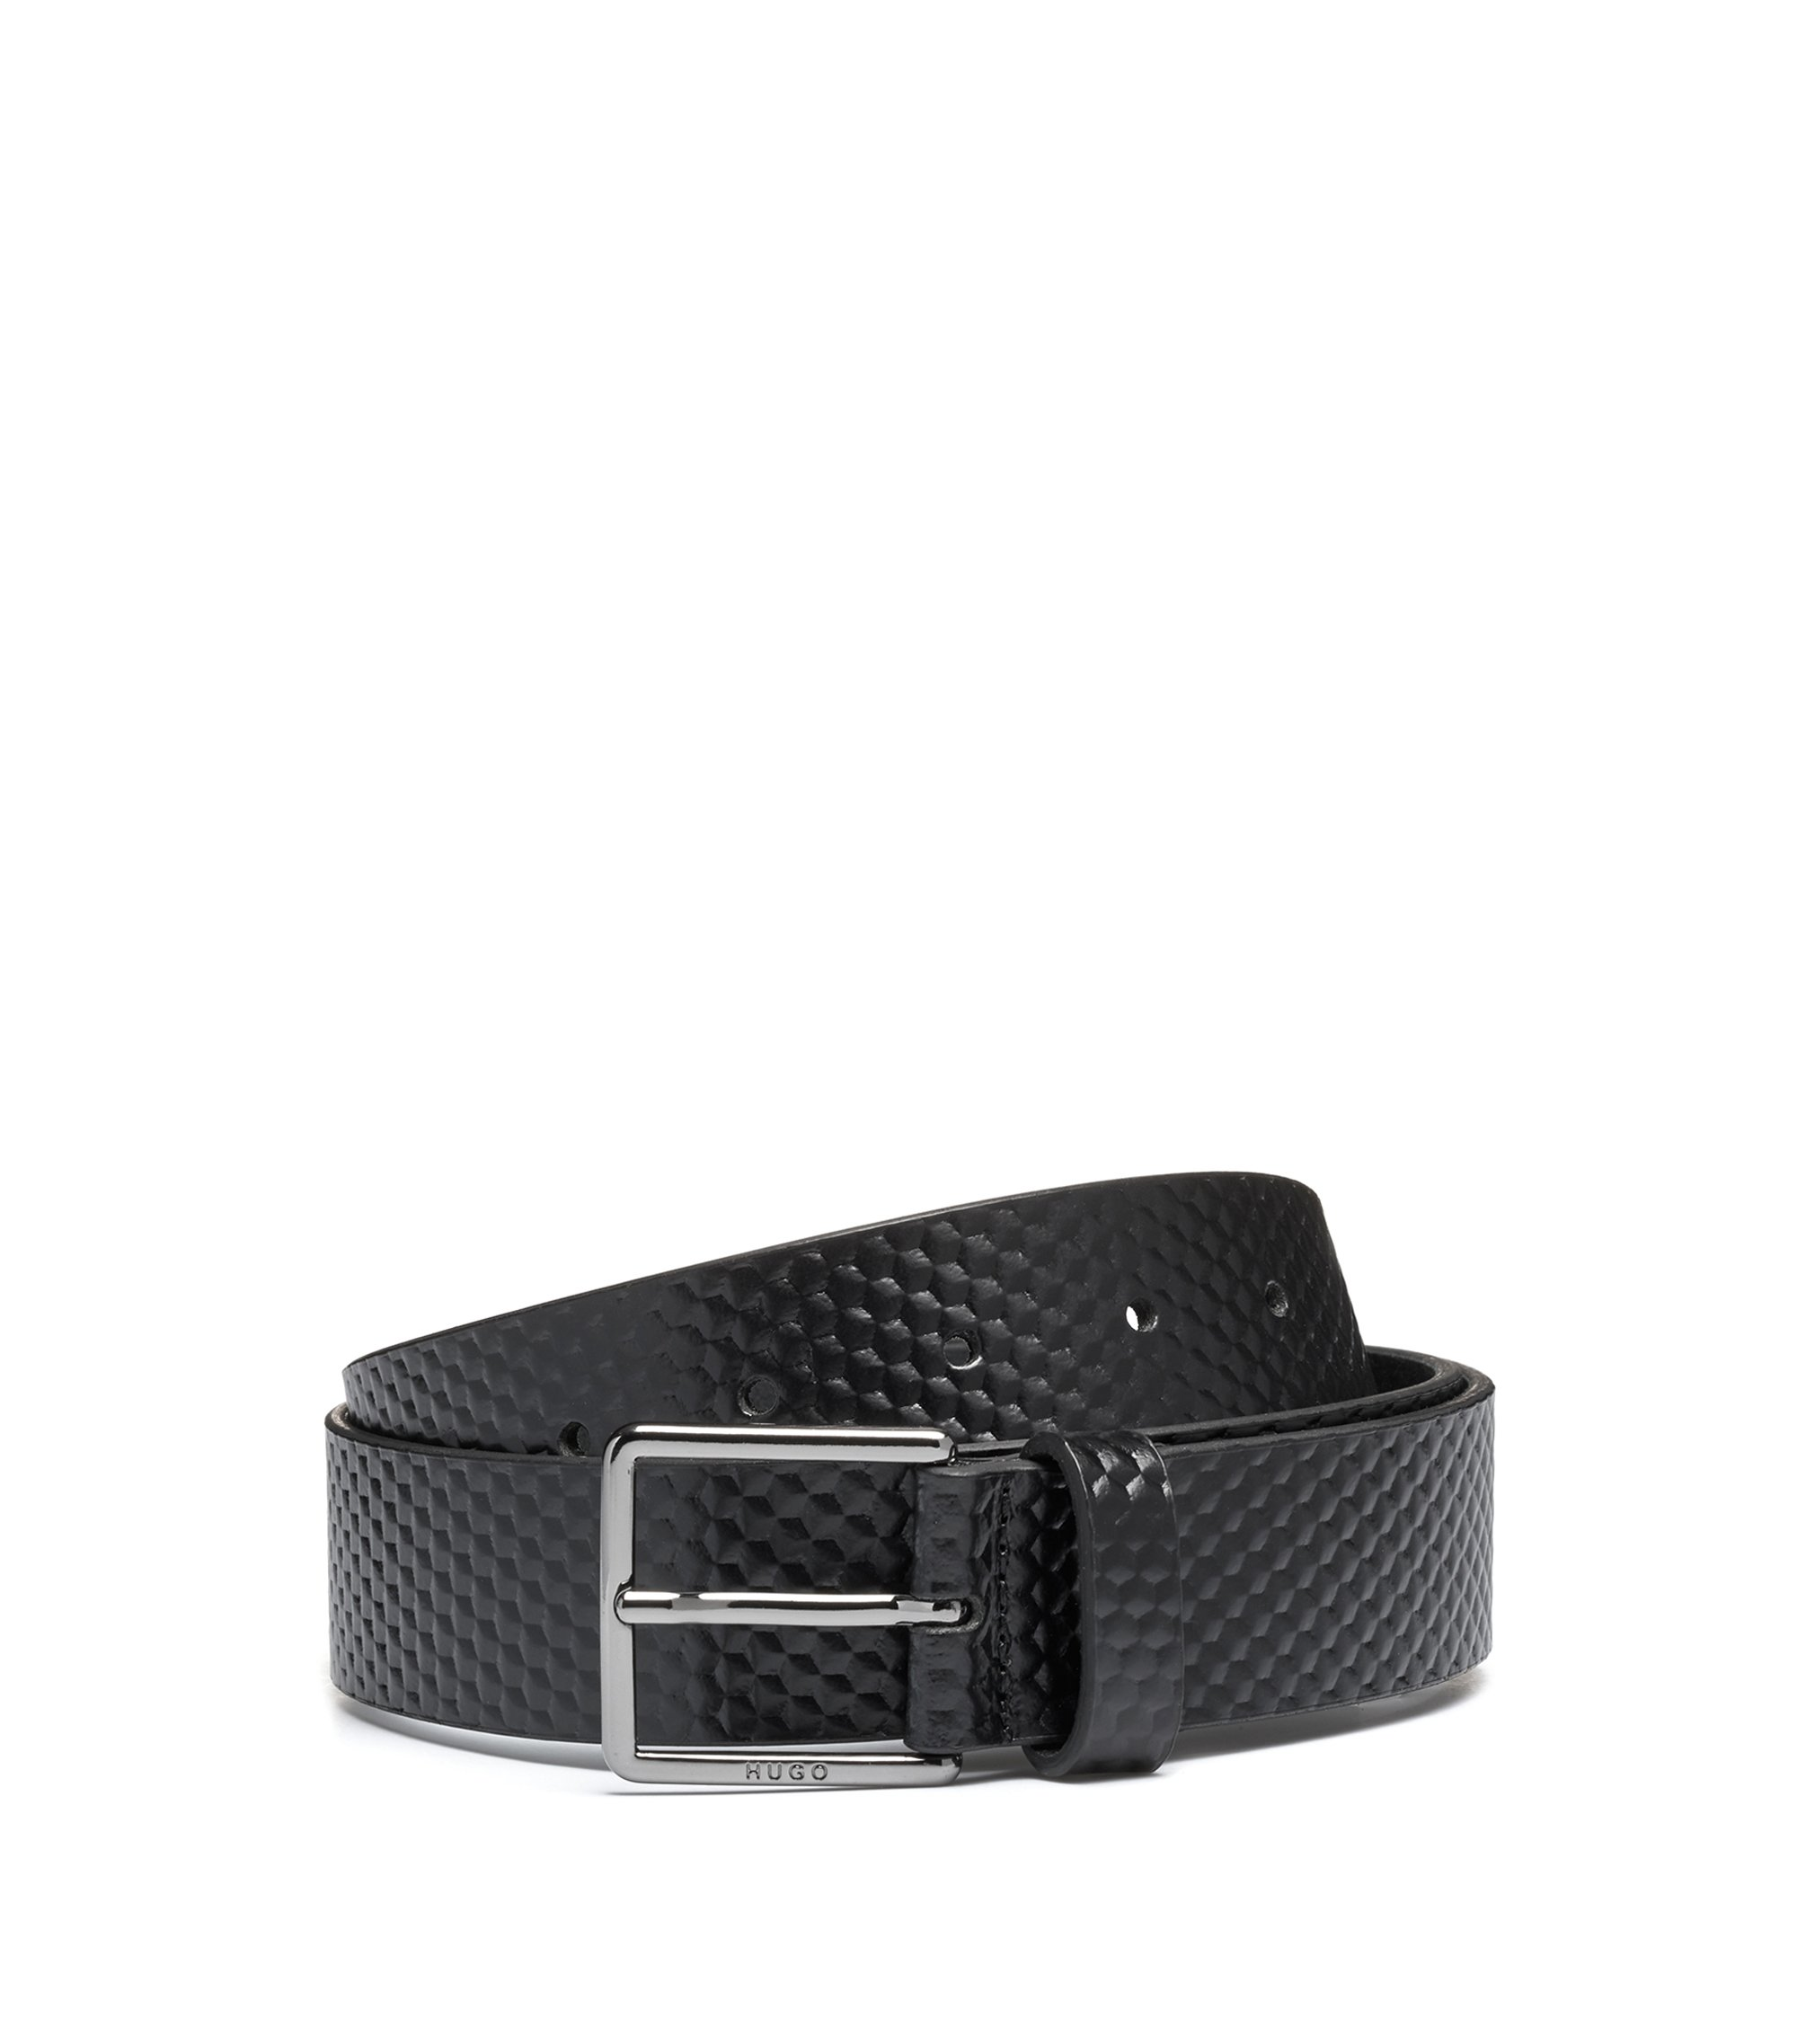 Leather belt with 3D embossing, Black